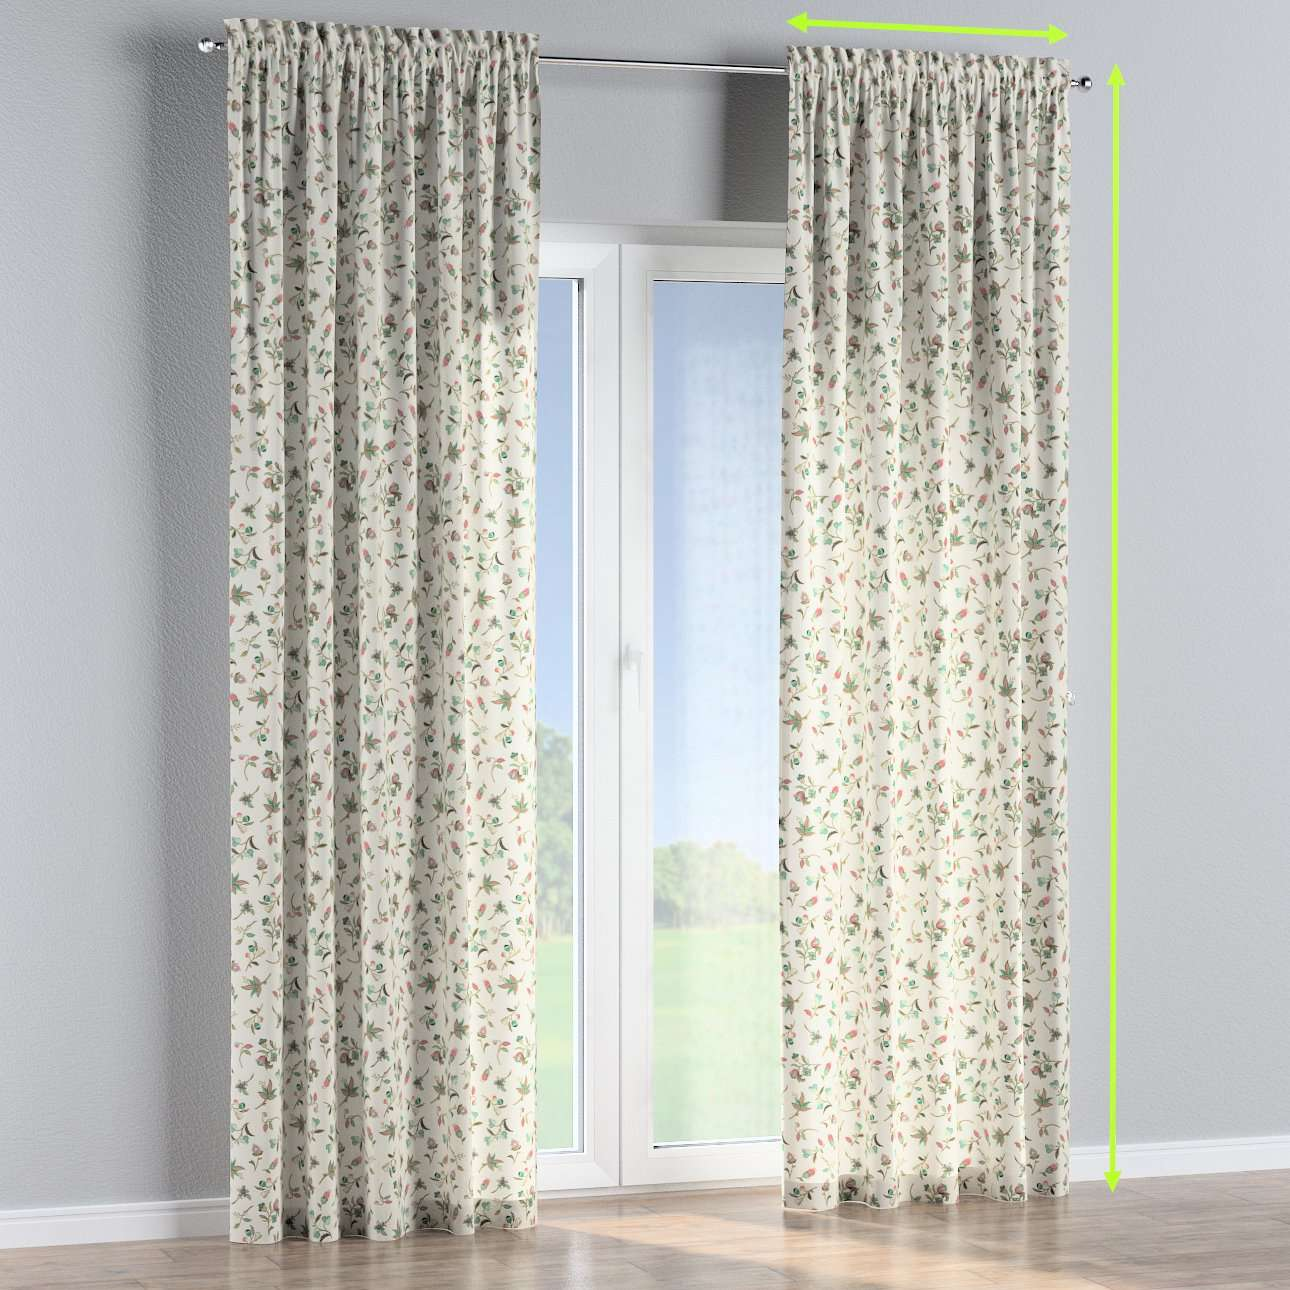 Slot and frill lined curtains in collection Londres, fabric: 122-02